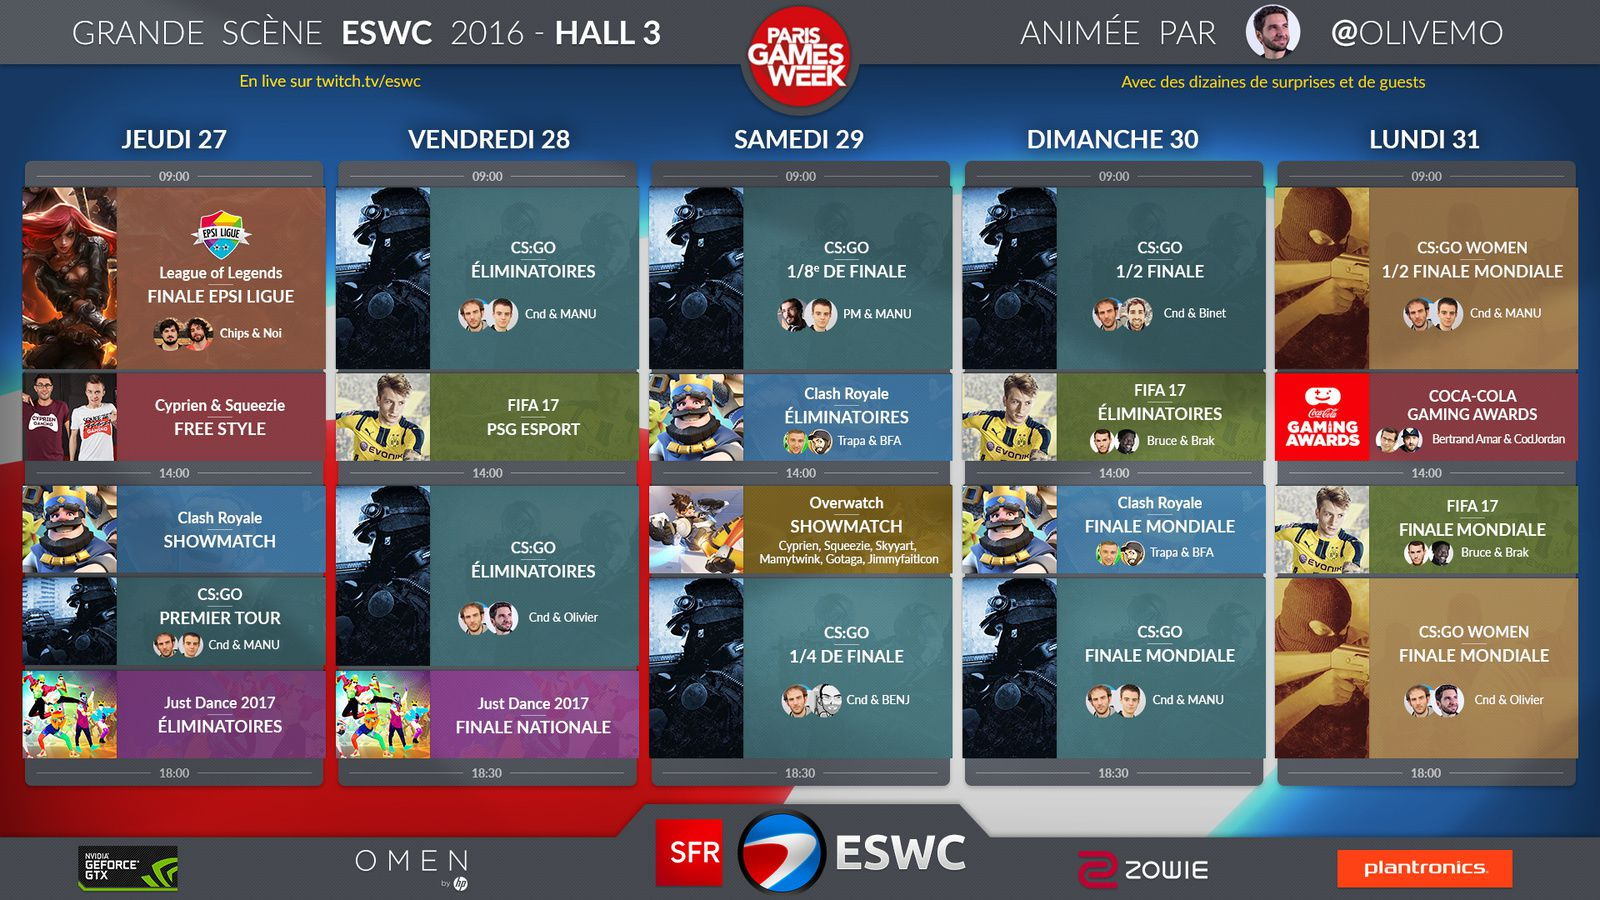 Le salon PARIS GAMES WEEK